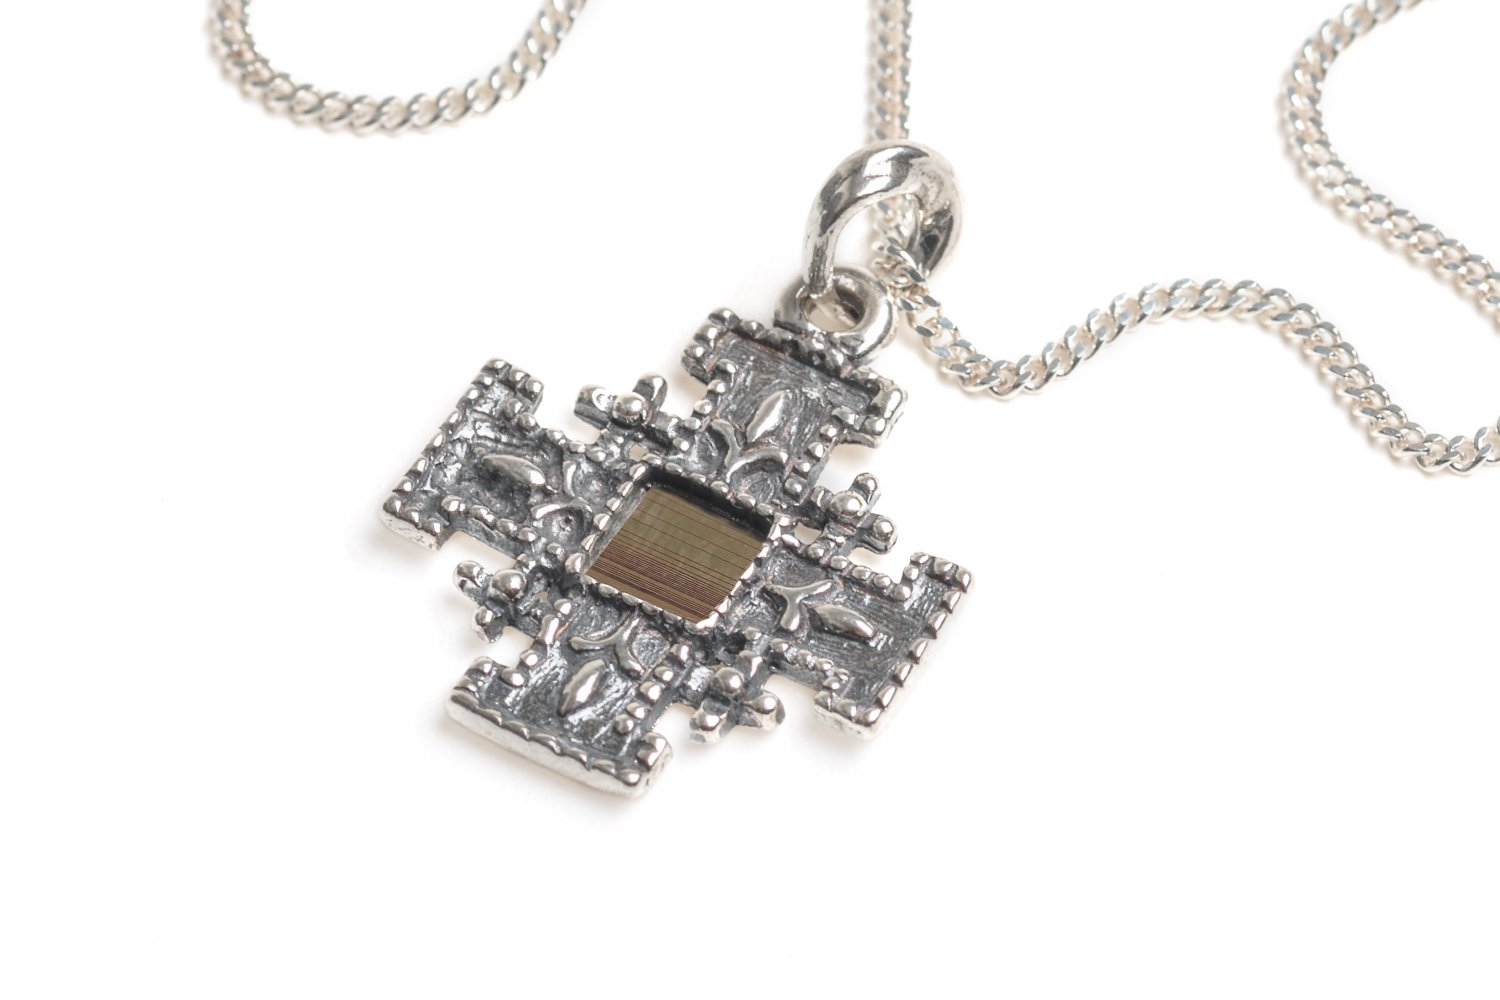 Sterling Silver 925 Jerusalem Cross with Nano Bible Pendant Chain New Testament